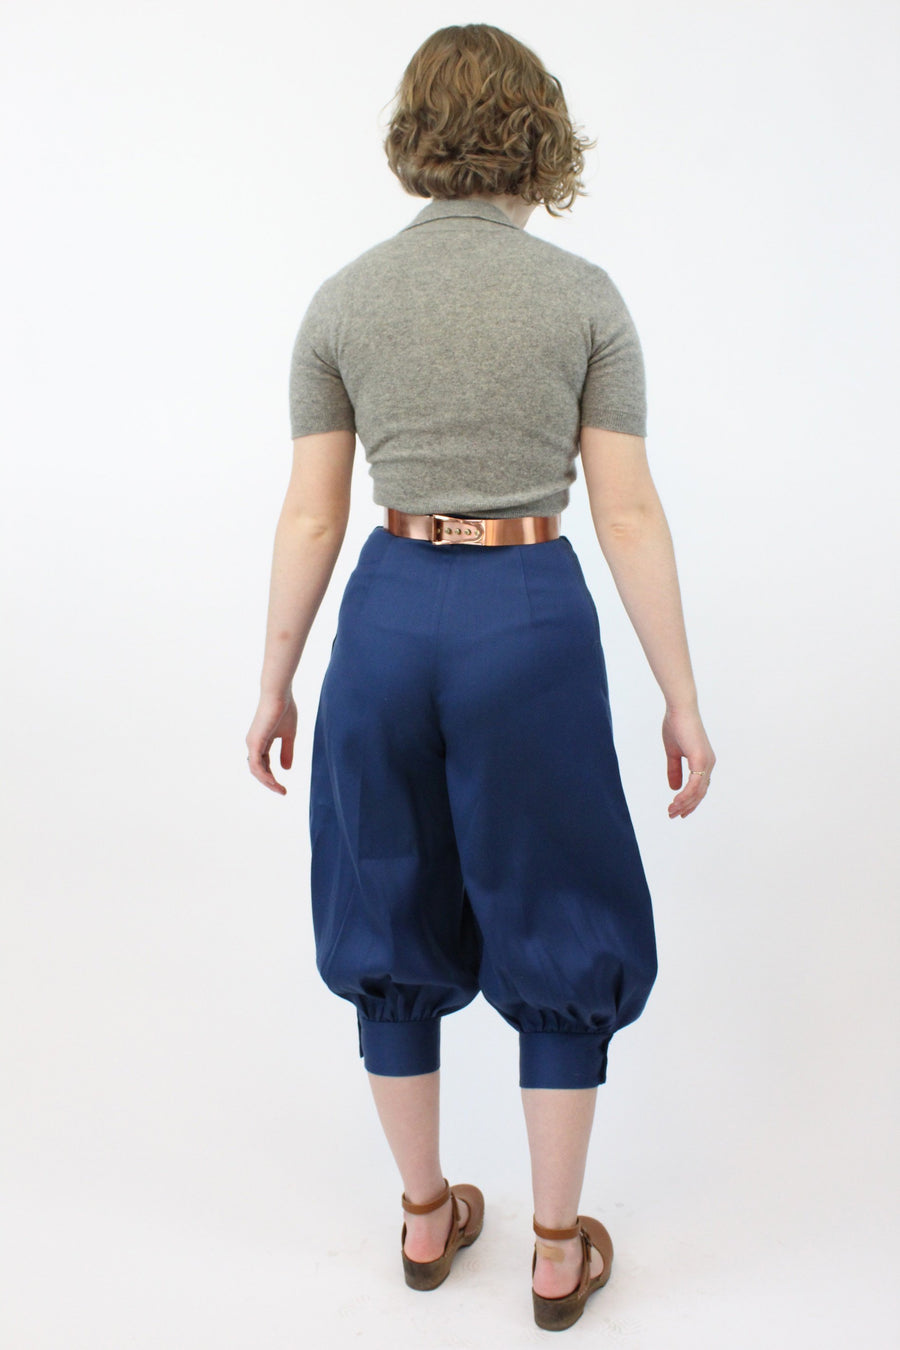 1950s jodhpurs pants xs | vintage cotton balloon pedal pushers